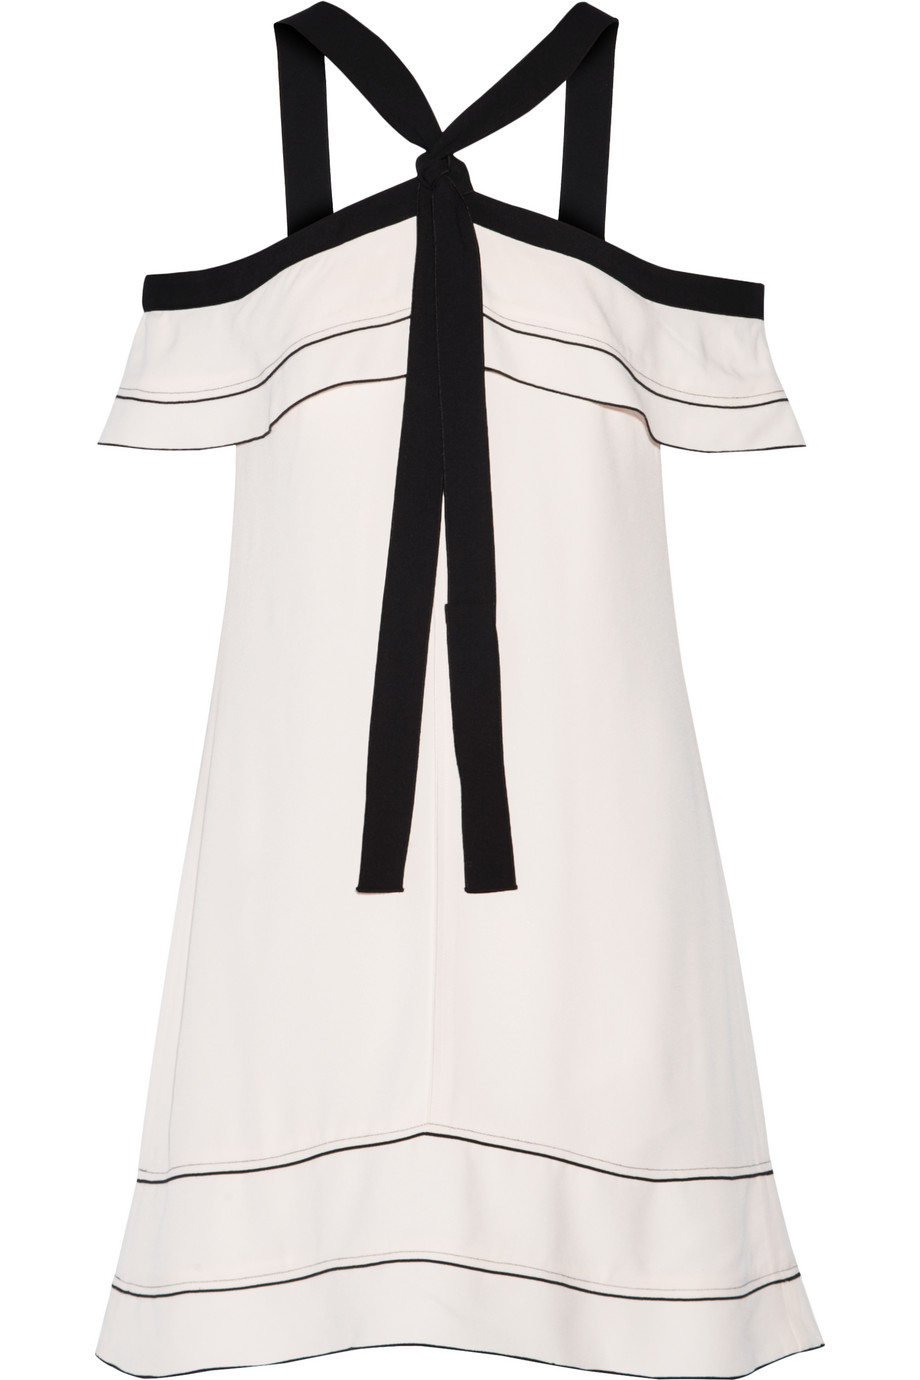 Proenza Schouler Off-the-Shoulder Pussy-Bow Crepe Mini Dress, Cream, Women's, Size: 0